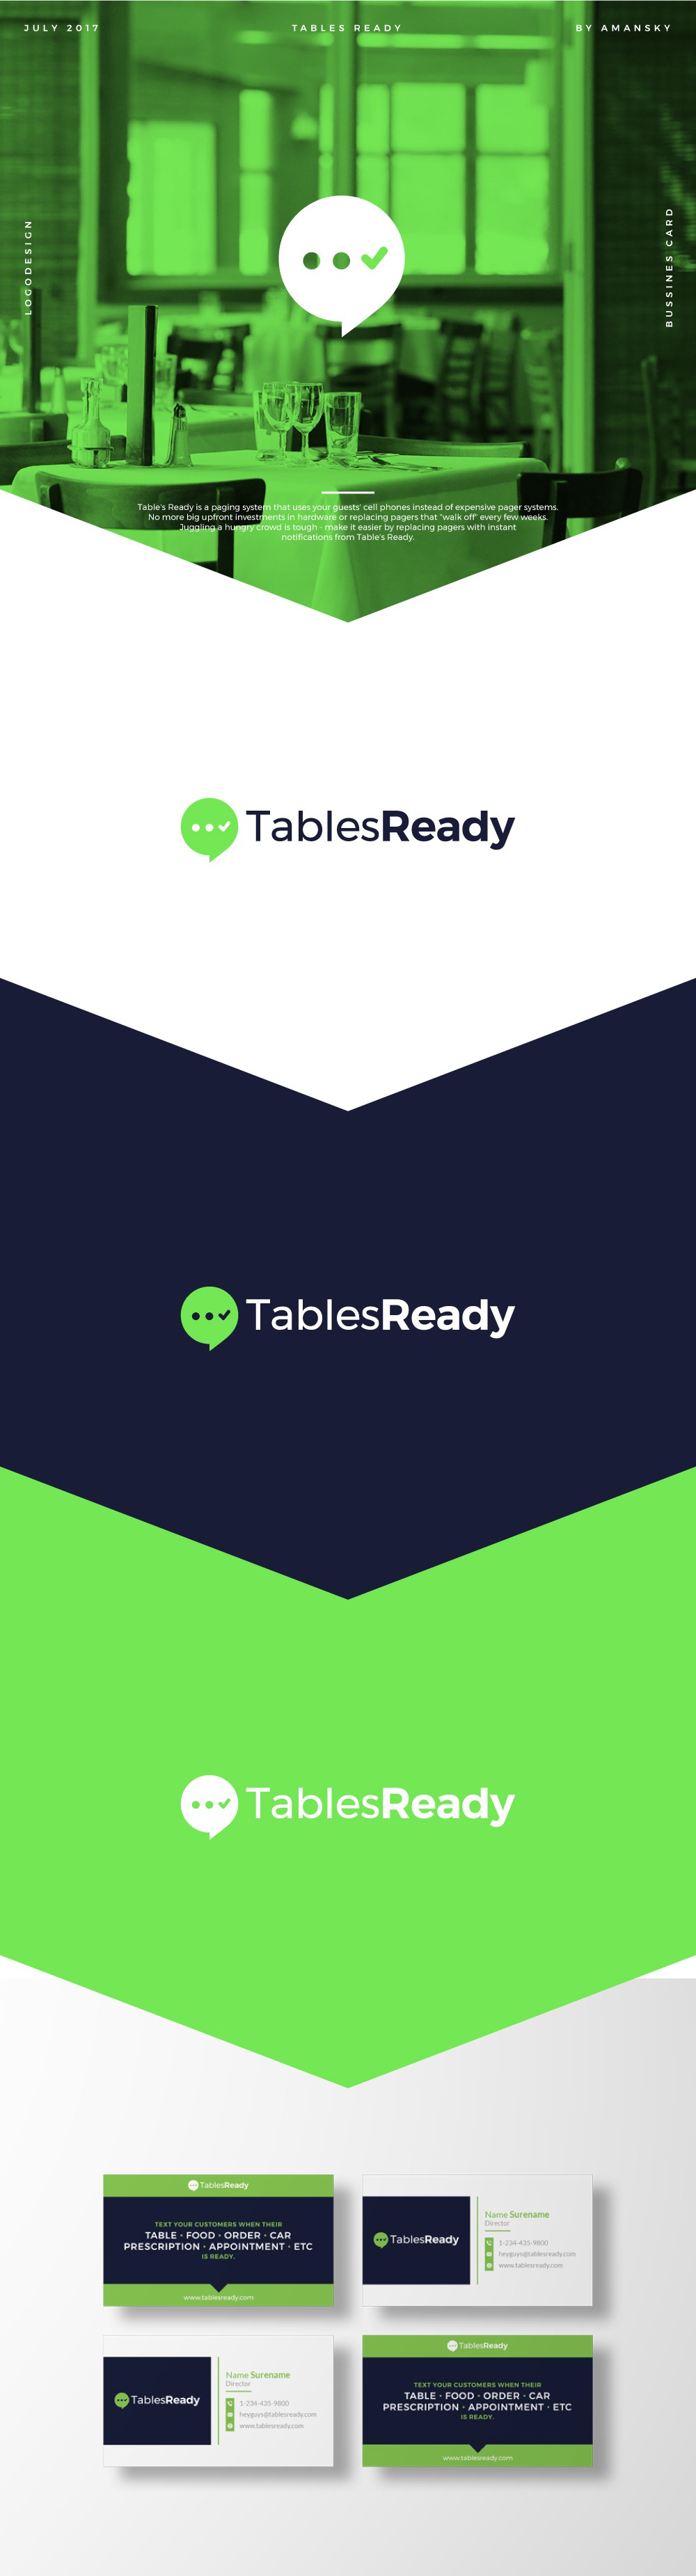 Table's Ready brand redesign